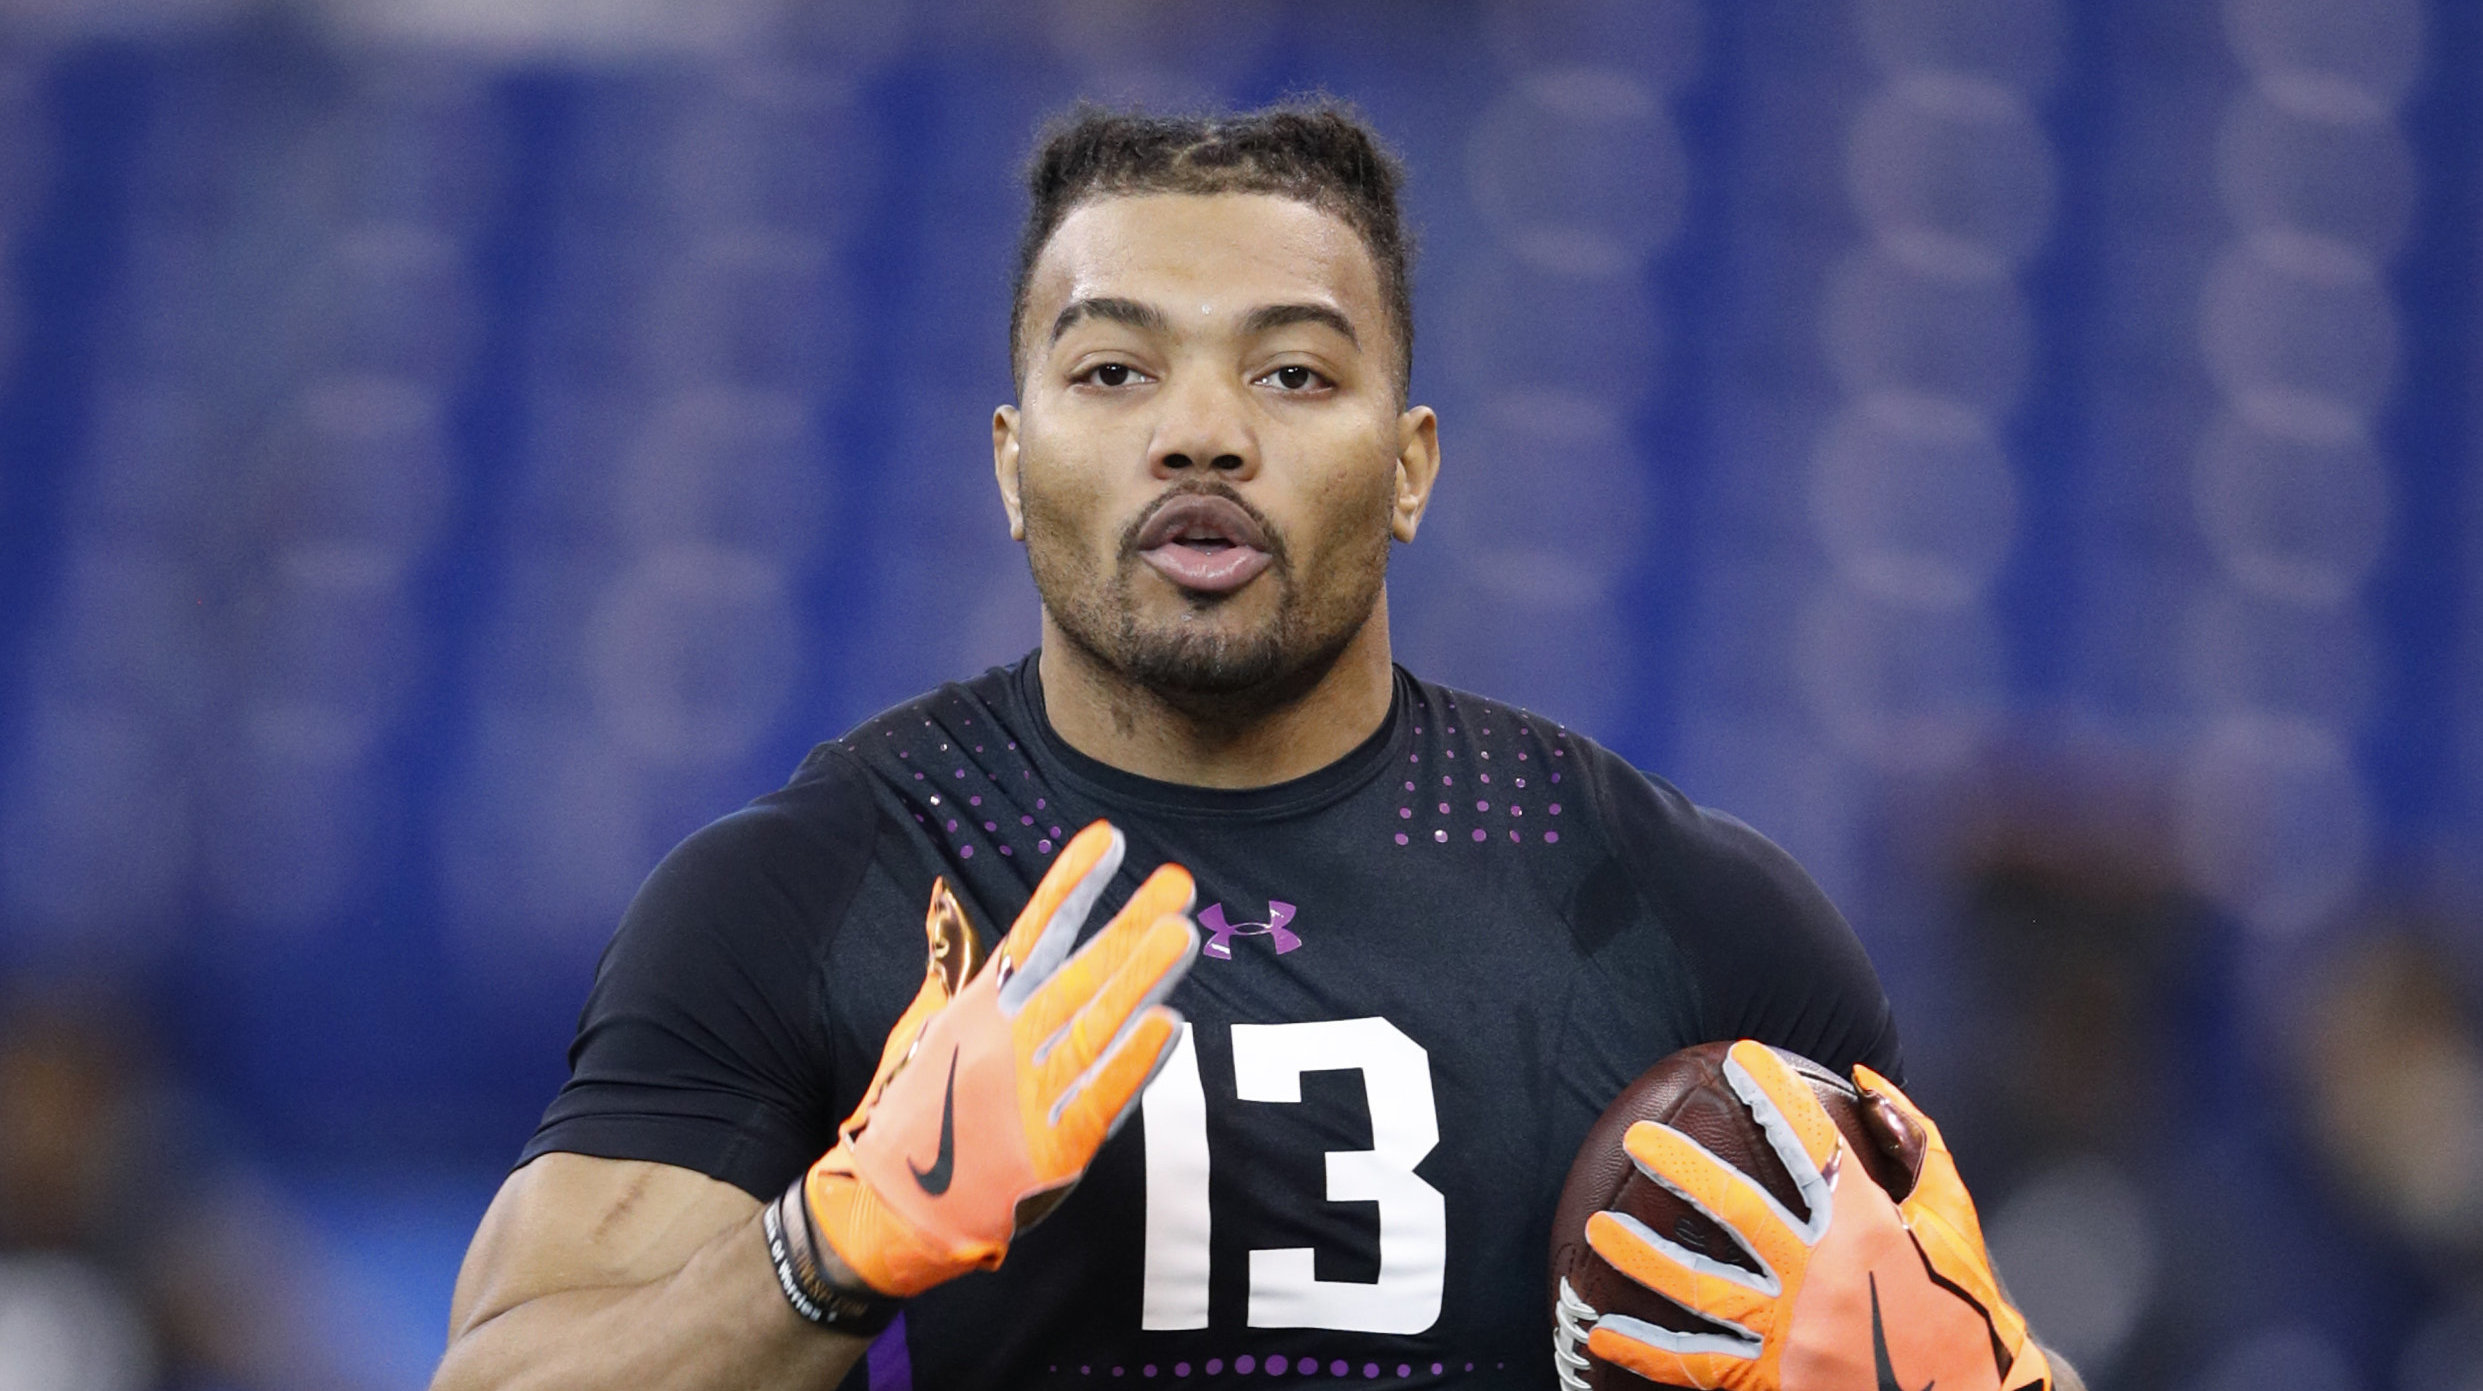 NFL Prospect Derrius Guice Says Team Asked Him If He Was Gay